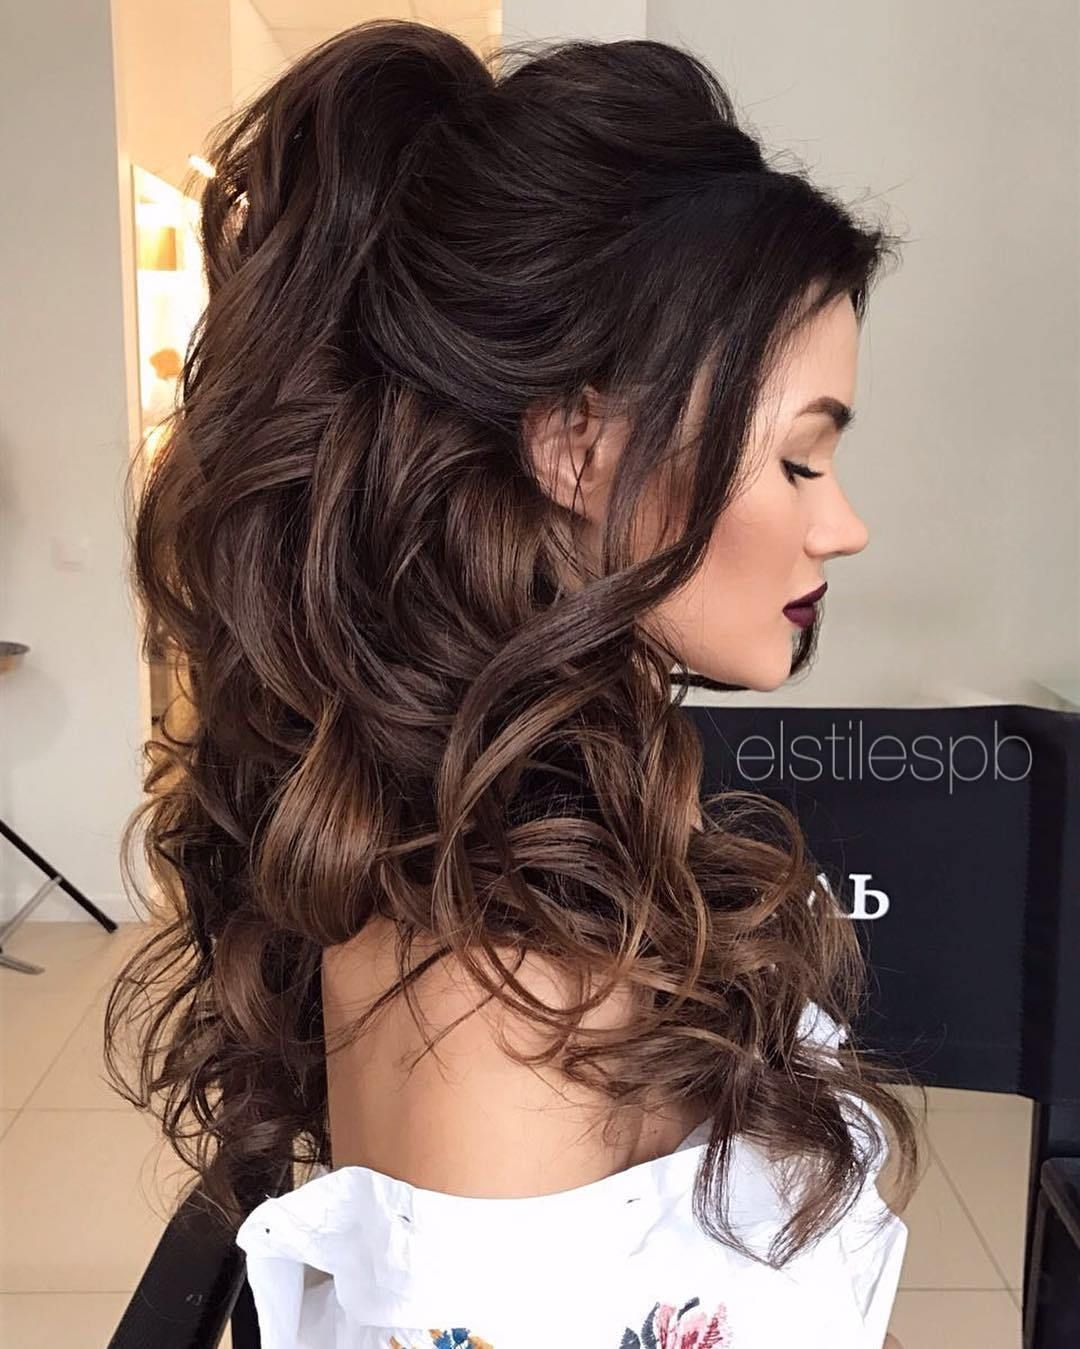 Discover More Ways To Style Your Hair For Your Next Prom Or Pageant Hair Hairstyle Pageant Prom Curlyha Hair Styles Medium Hair Styles Long Hair Styles